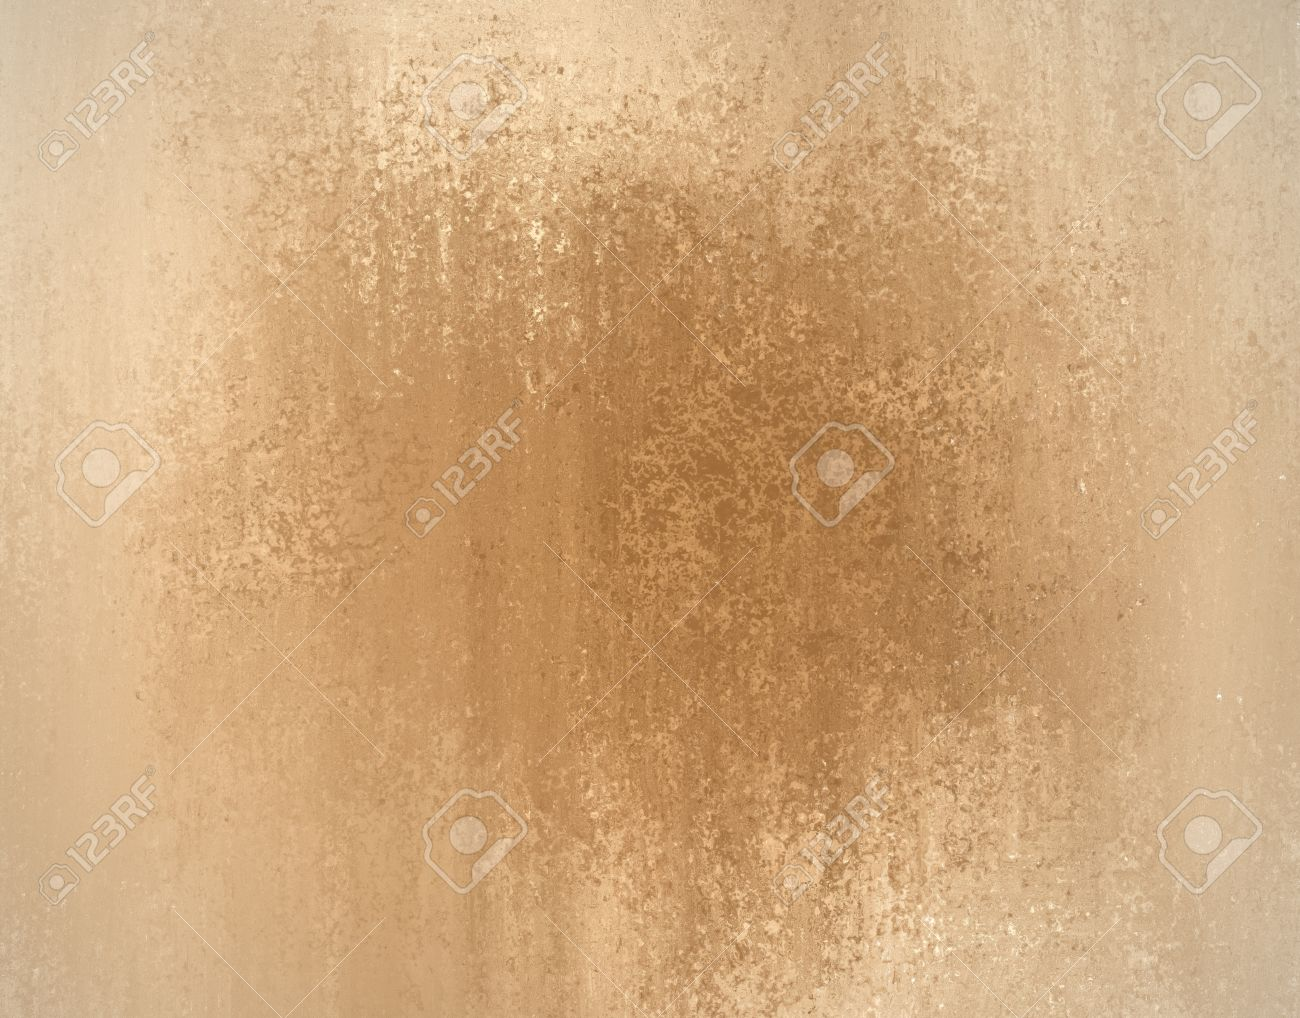 Pale Brown Background With Soft Pastel Vintage Grunge Texture And Light Solid Design Watercolor